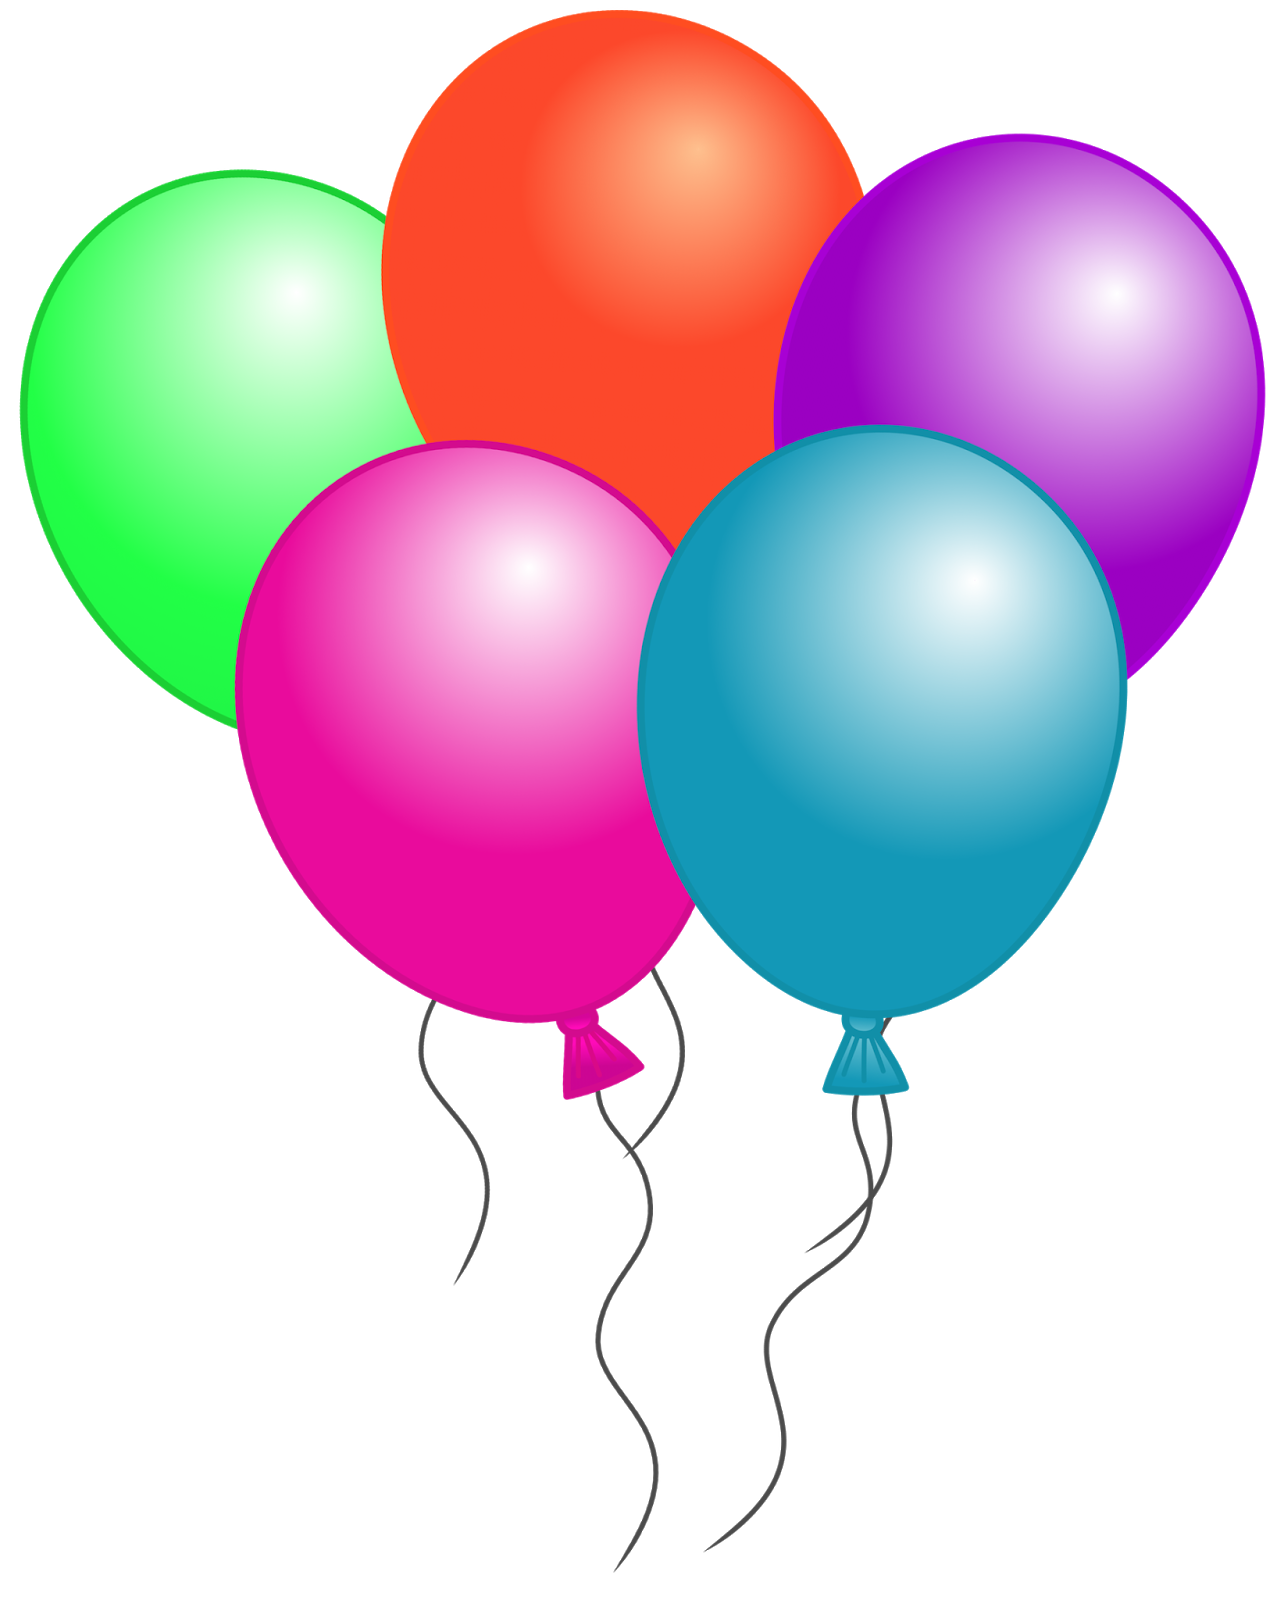 Number balloon . Ballon clipart birthday accessory image free stock